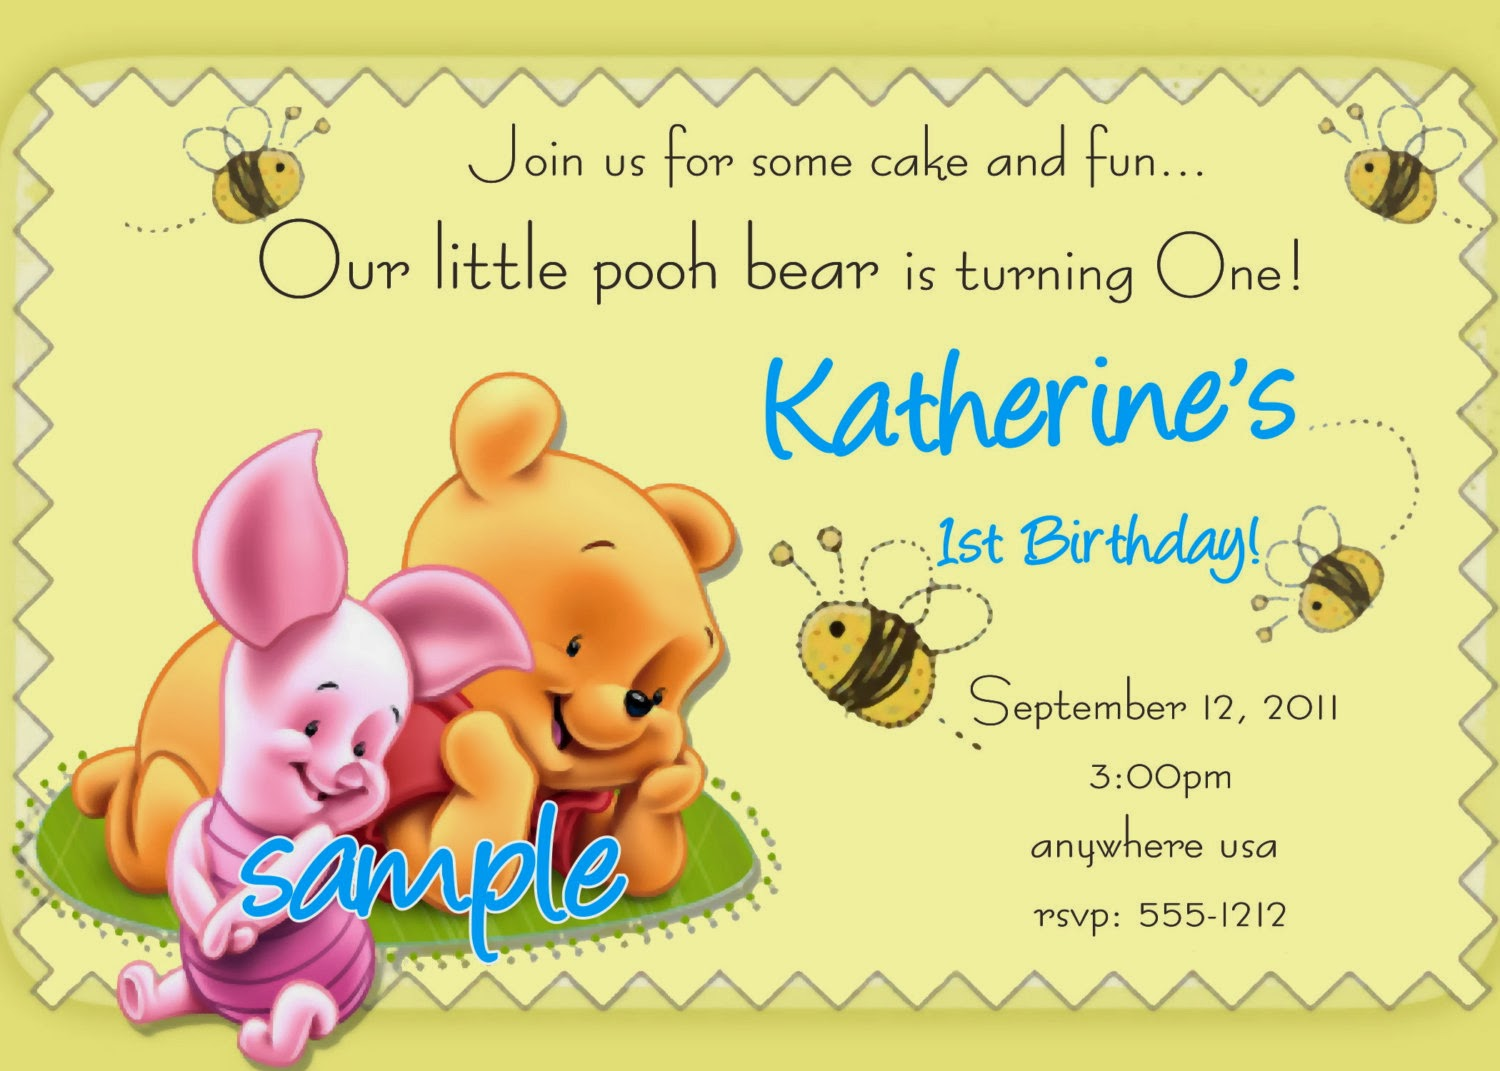 1st Birthday Invitations 16 thank you for inviting us to your party wingstofly info,Thank You For Inviting Us To Your Party